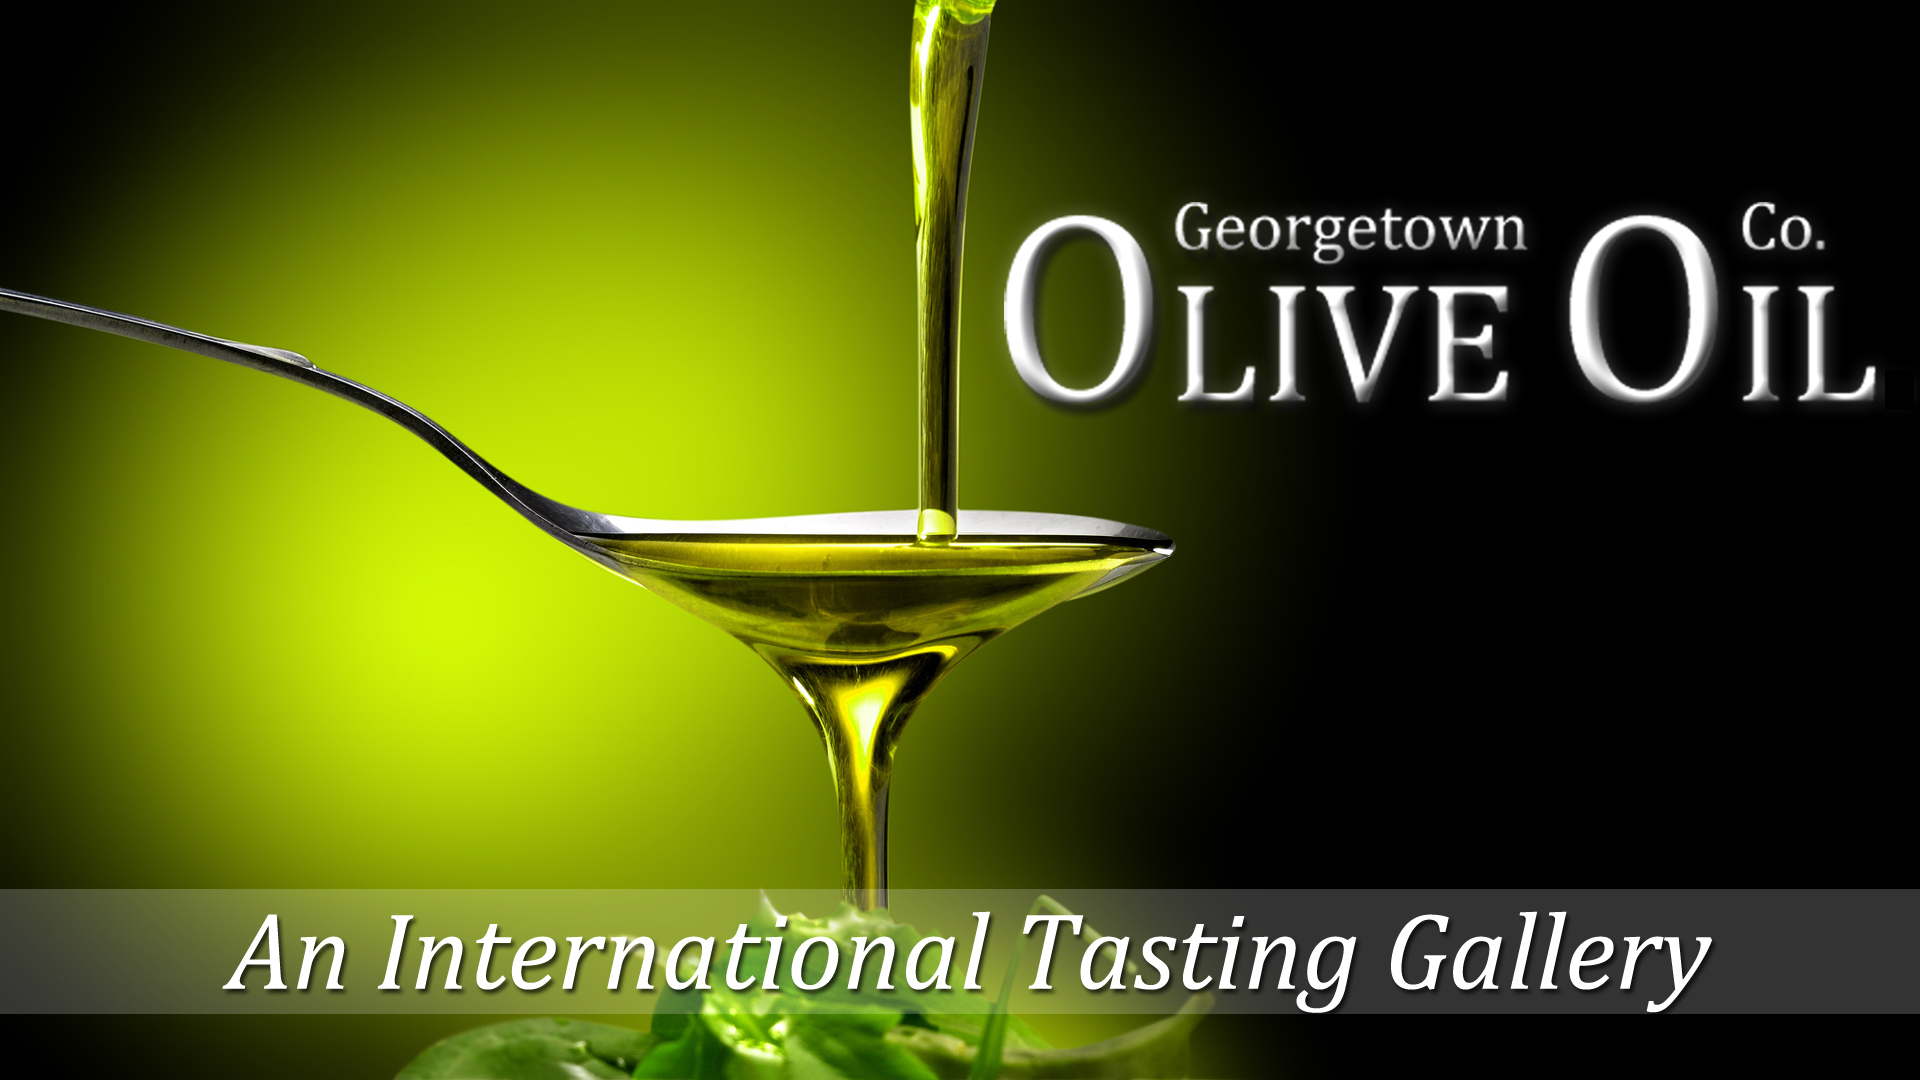 Georgetown Olive Oil logo